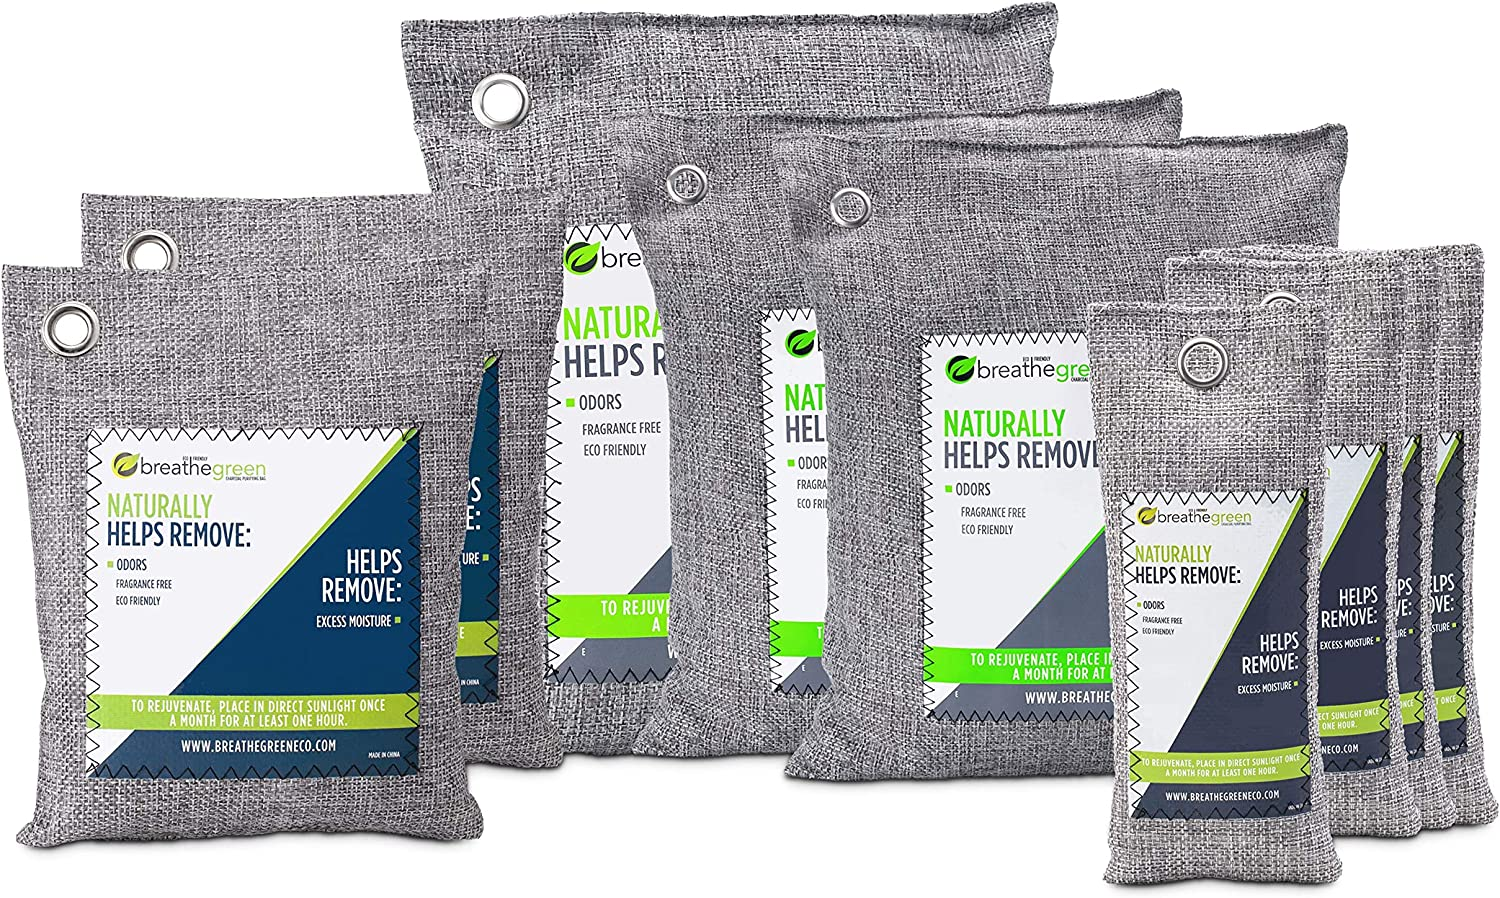 Breathe Green Bamboo Charcoal Air Purifying Bags (9-Piece Value Pack), Activated Charcoal Odor Absorber, Natural Air Freshener Removes Odor and Moisture, Odor Eliminators for Home, Car, Garage, Shoes